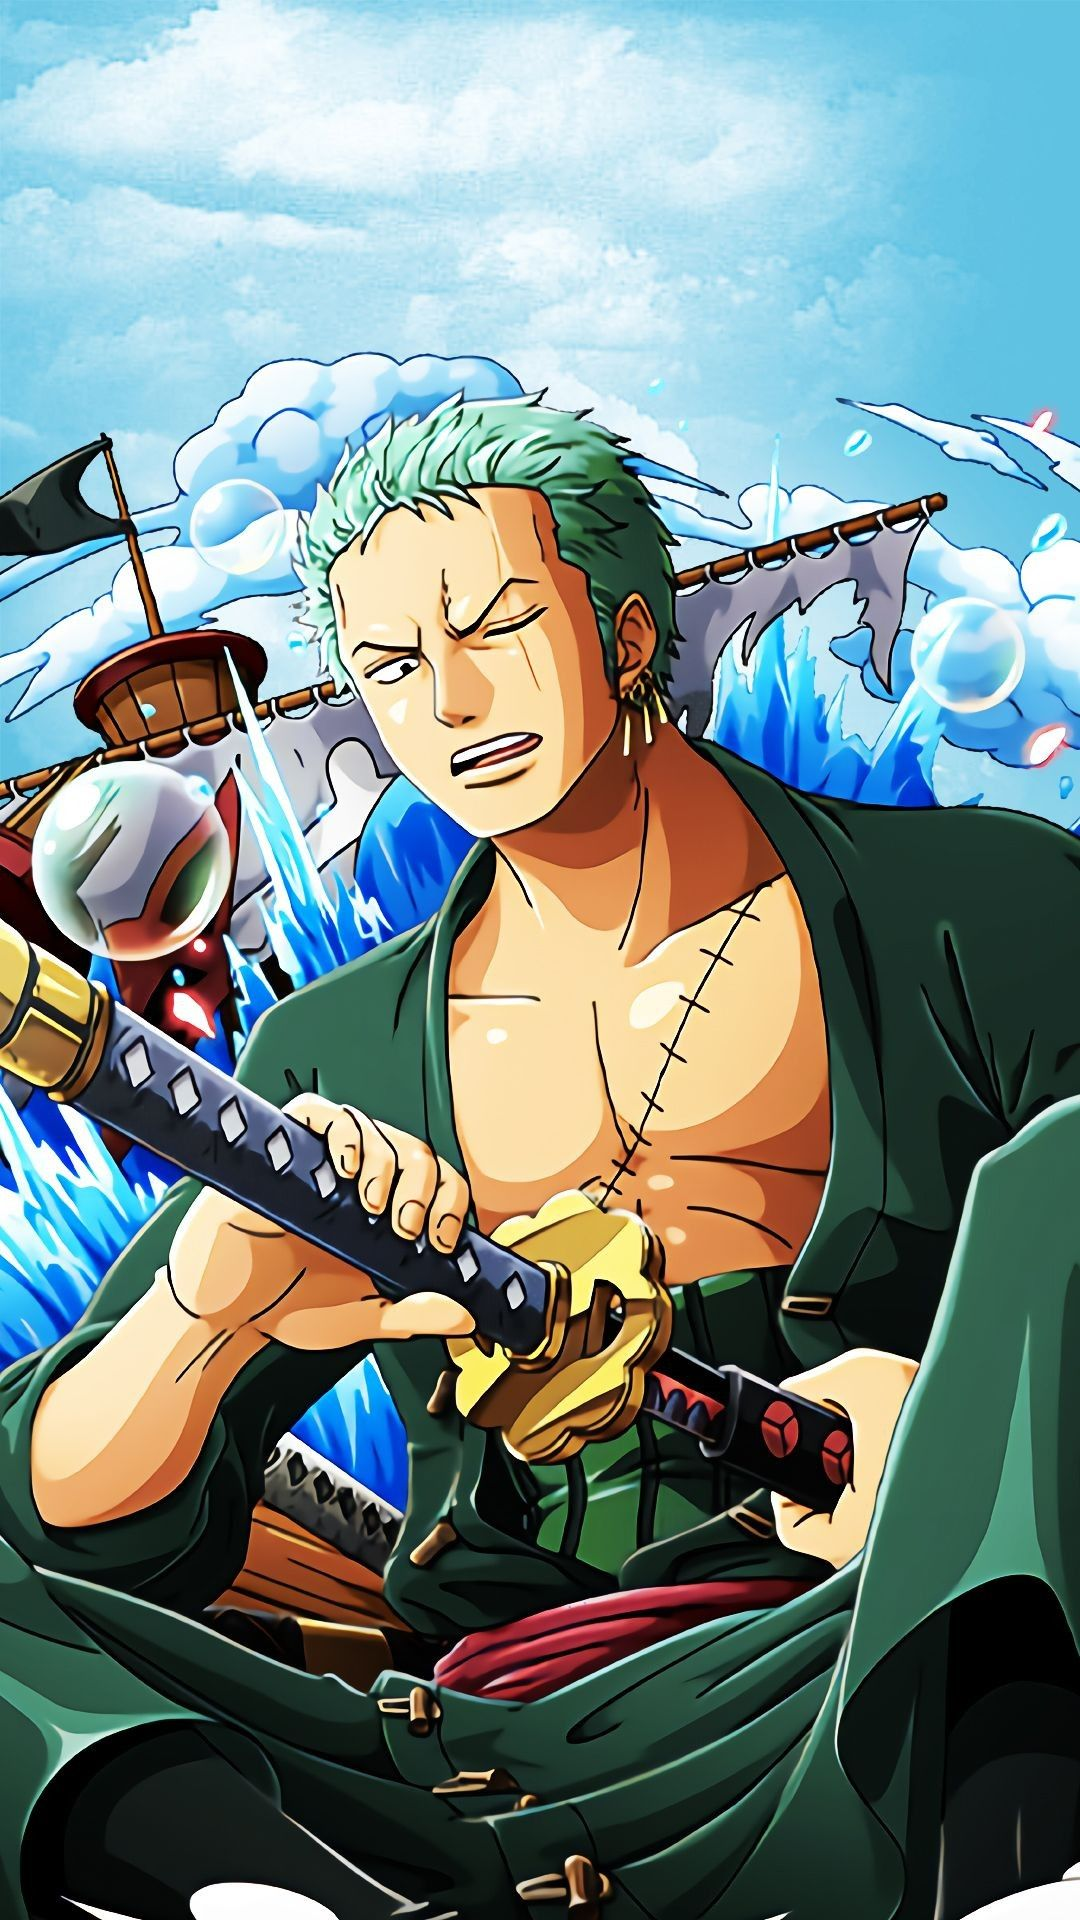 Iphone Zoro Wallpapers - KoLPaPer - Awesome Free HD Wallpapers